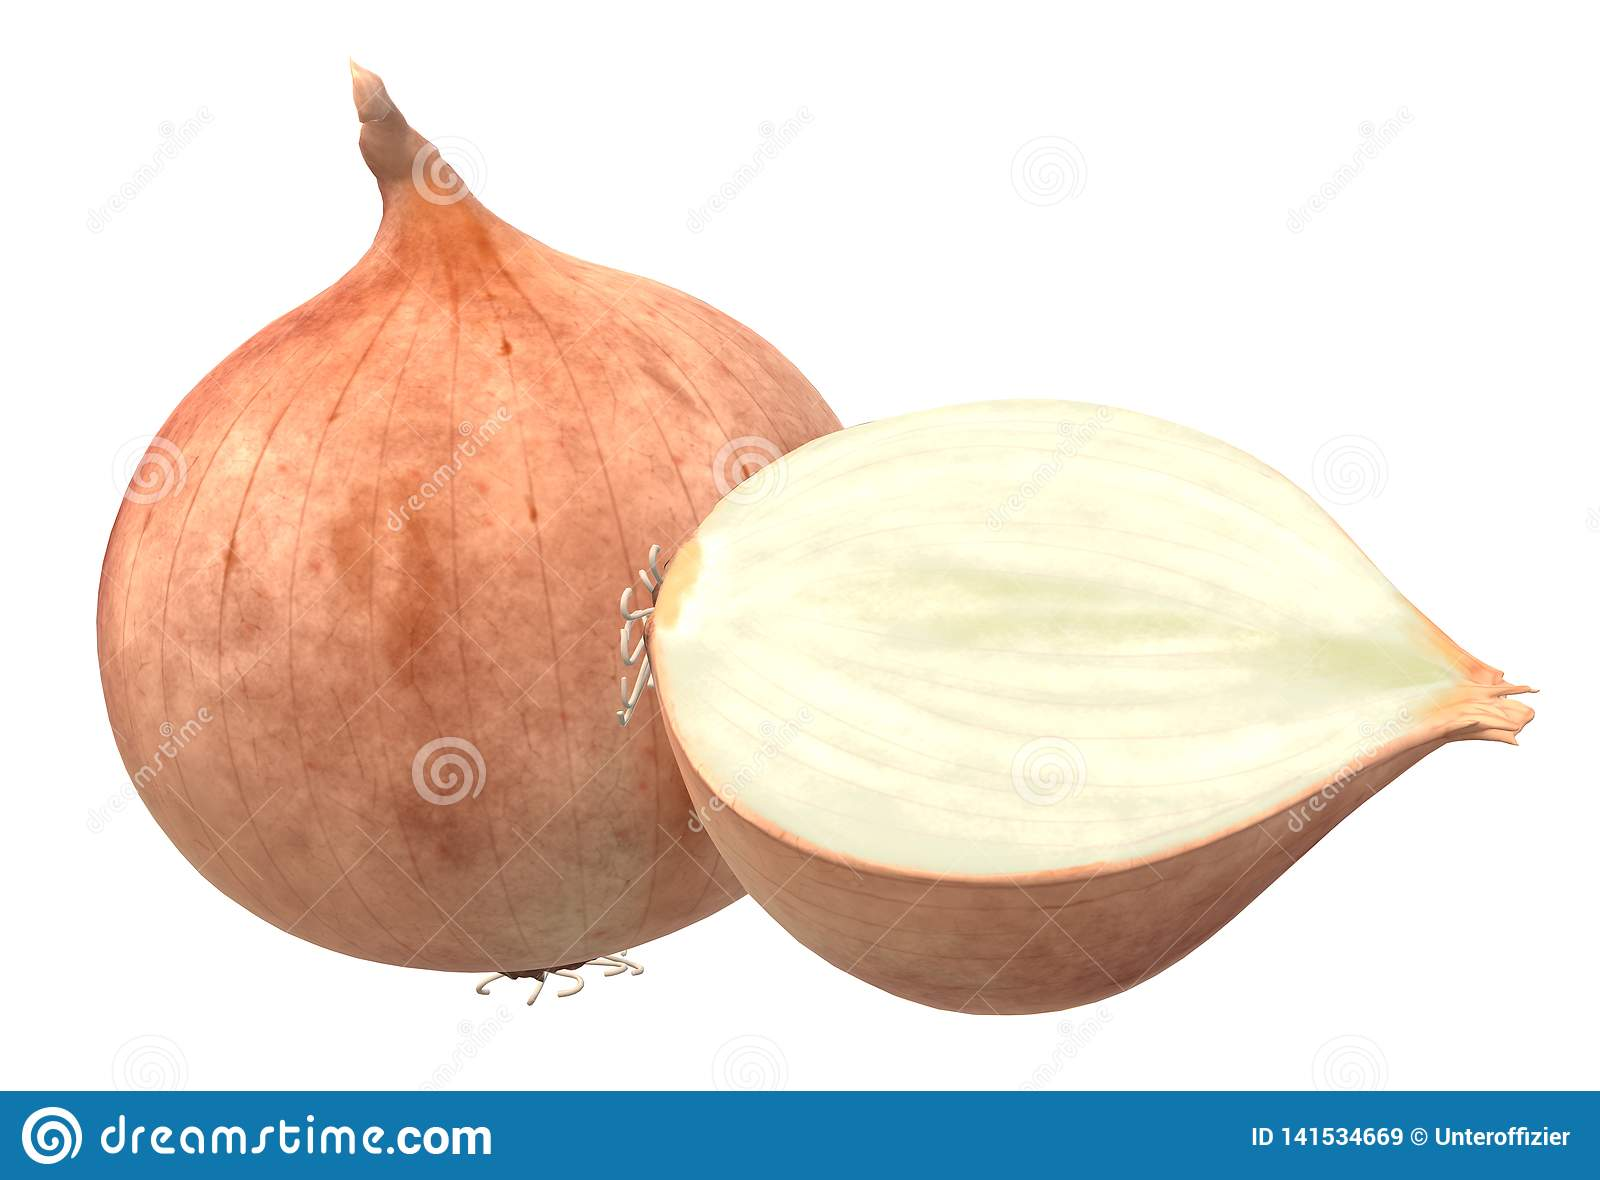 A full and a half sliced onion